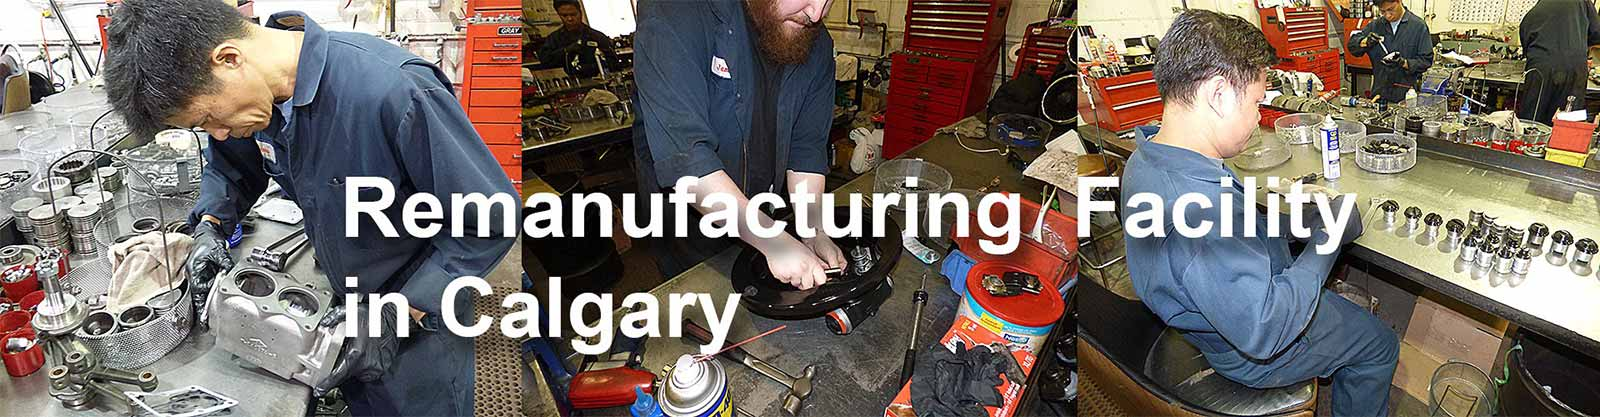 Remanufacturing In Calgary AB